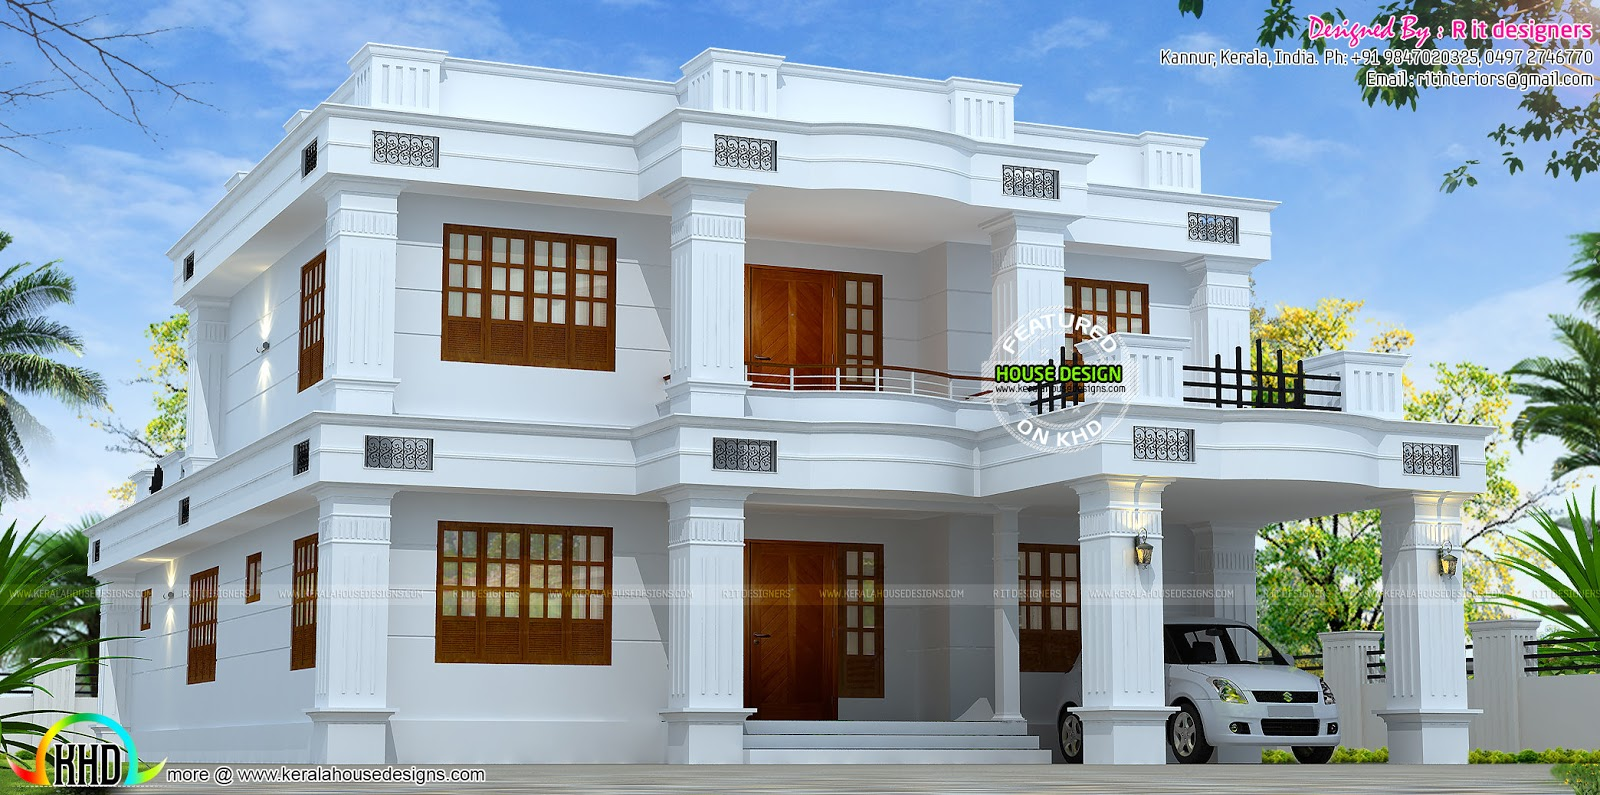 February 2016 kerala home design and floor plans for Home designs and plans